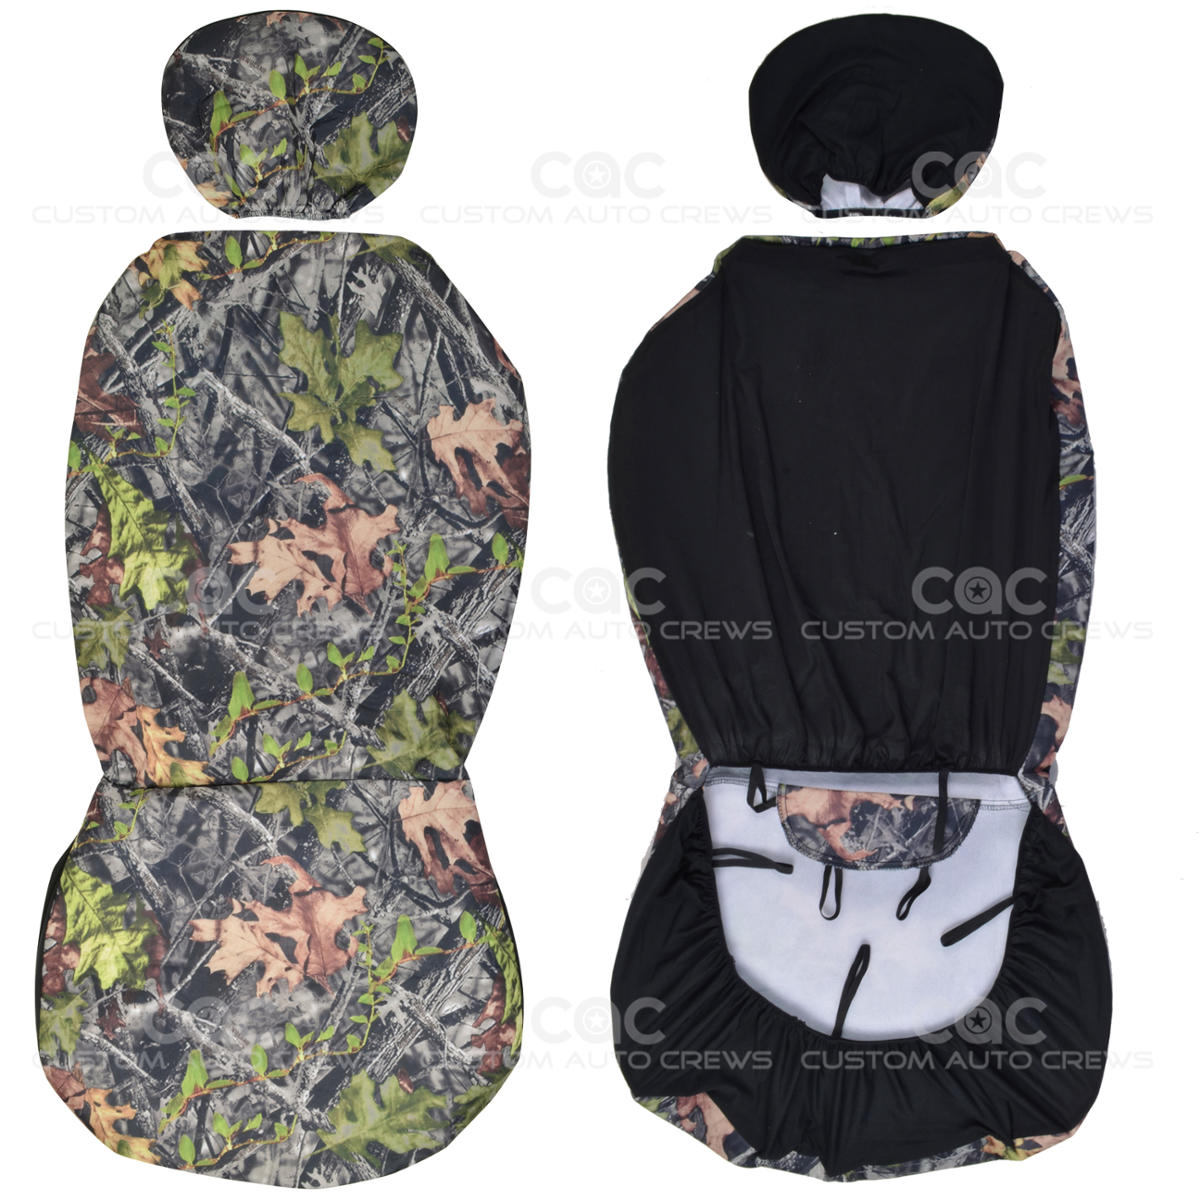 4pc camo car seat cover 4pc camo microfiber floor mats for auto van suv truck ebay. Black Bedroom Furniture Sets. Home Design Ideas